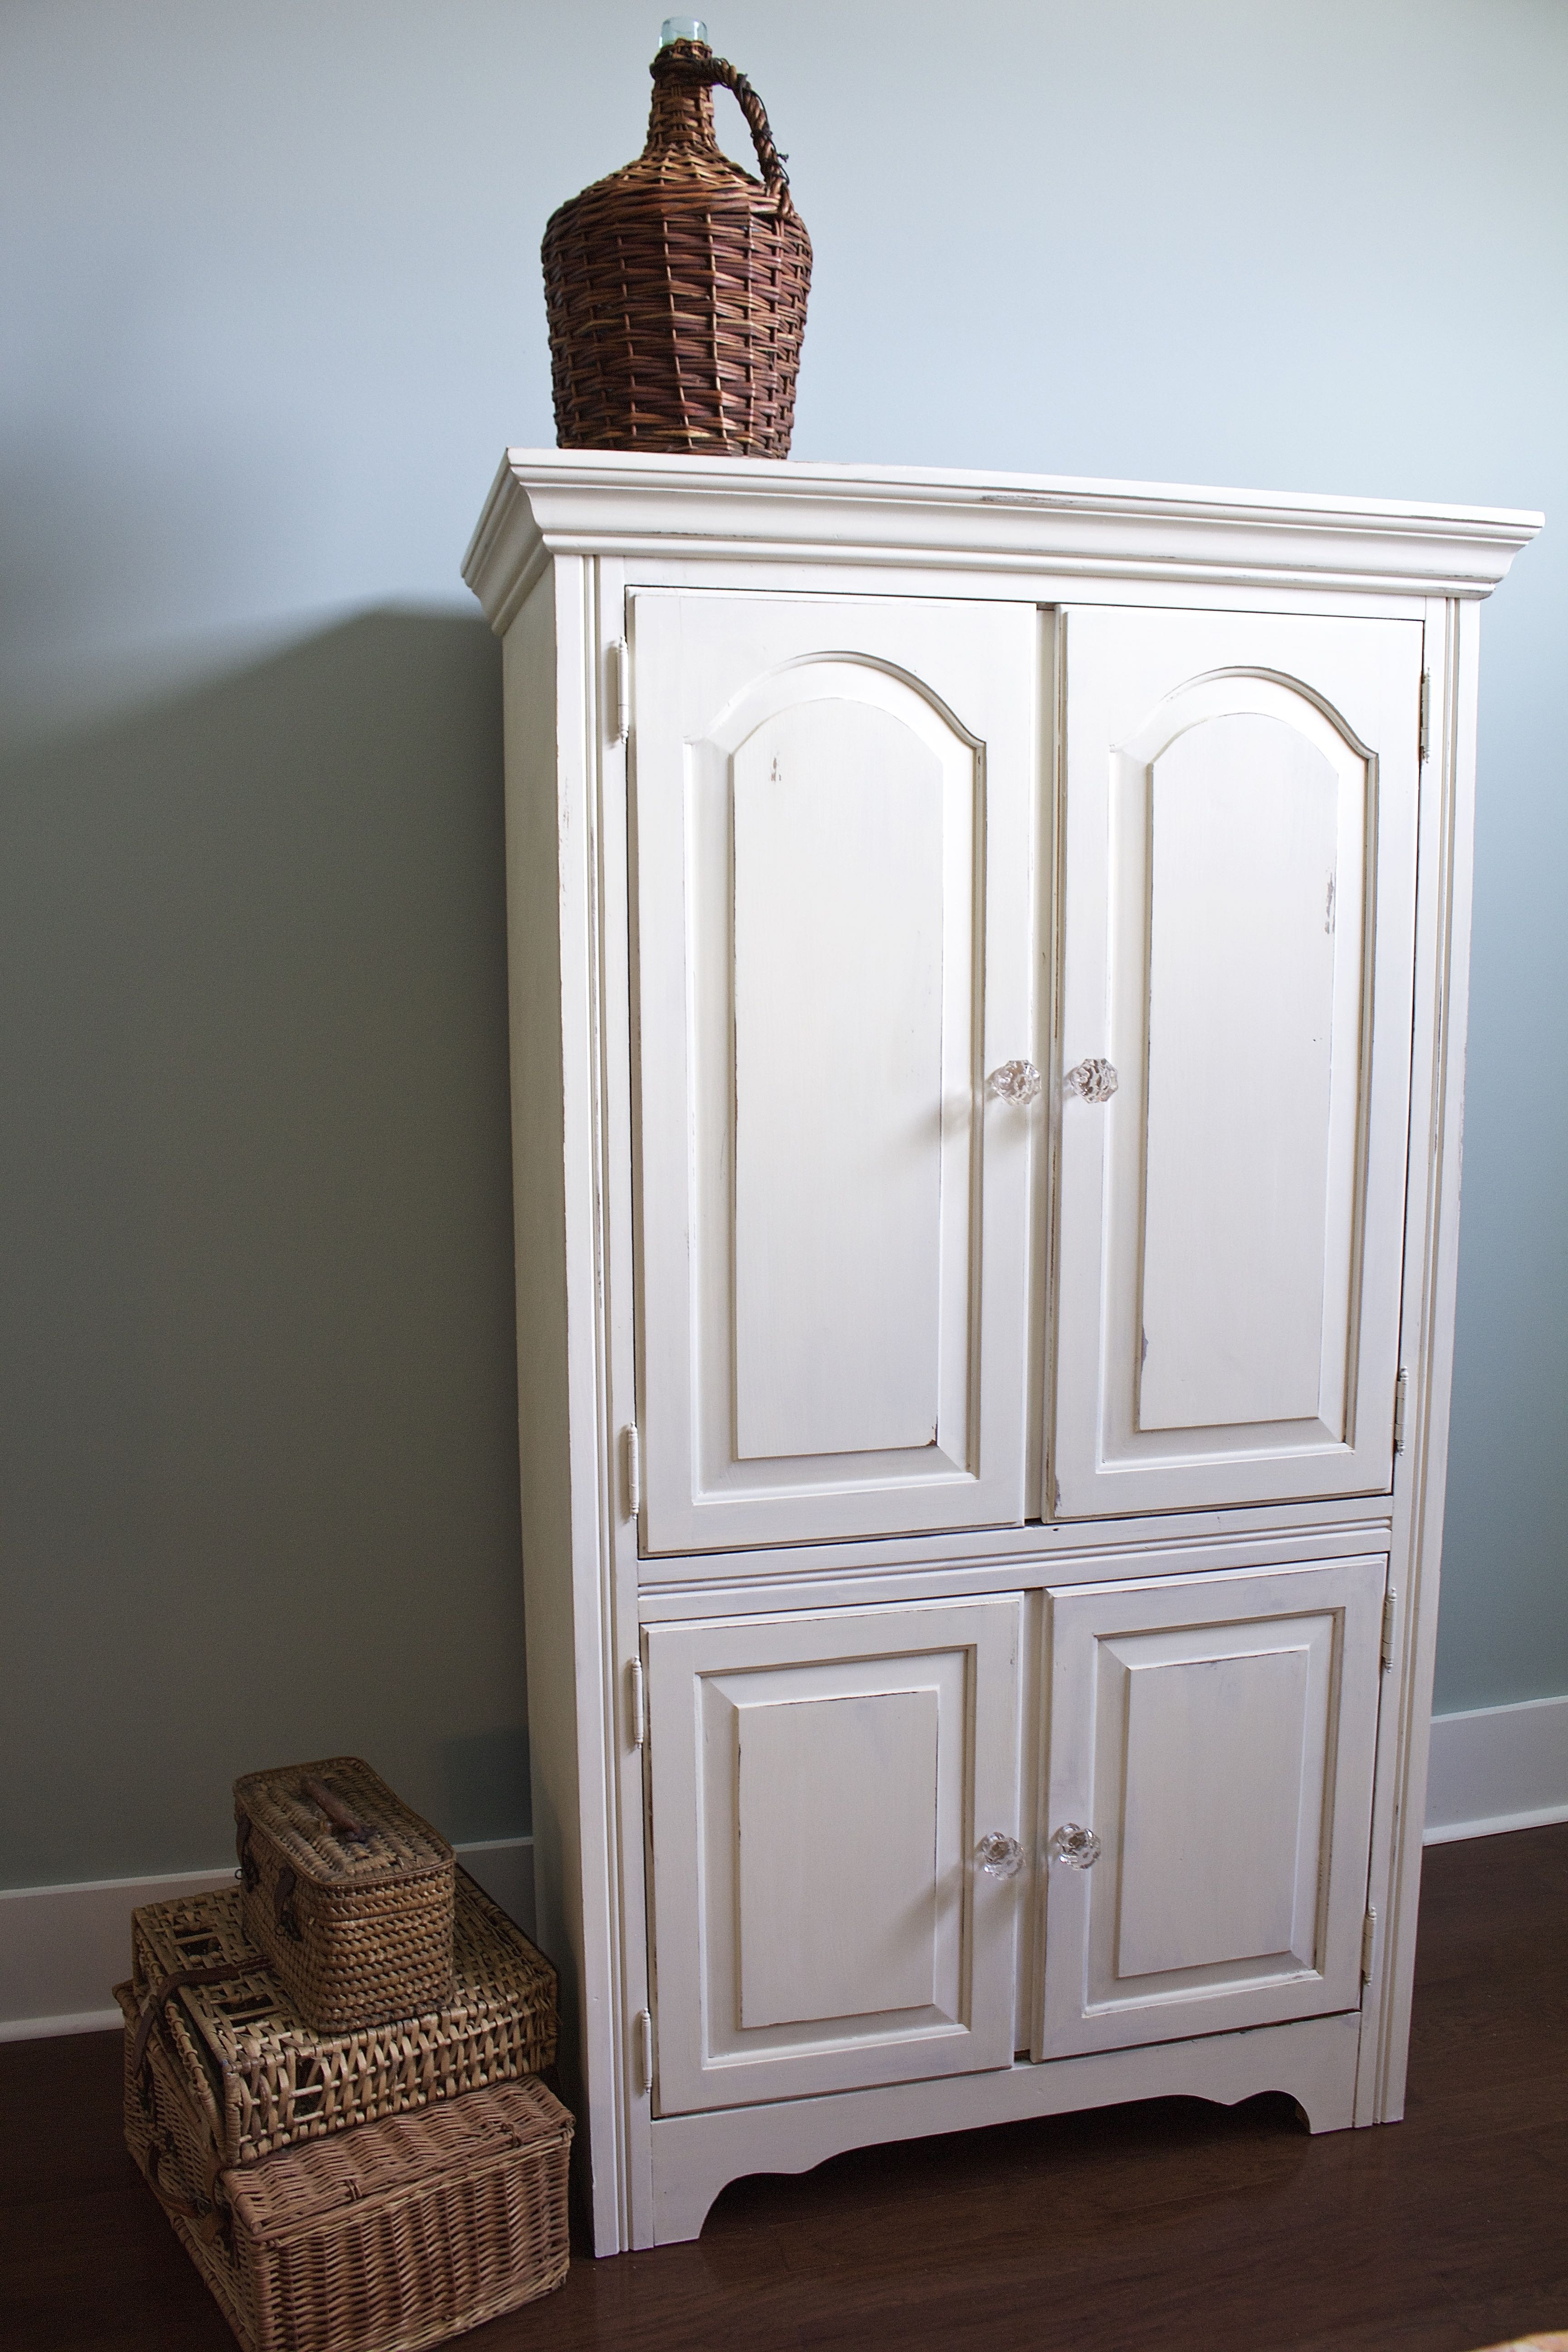 This Chalk Painted Armoire Makeover goes great in the bedroom. Love this transformation.